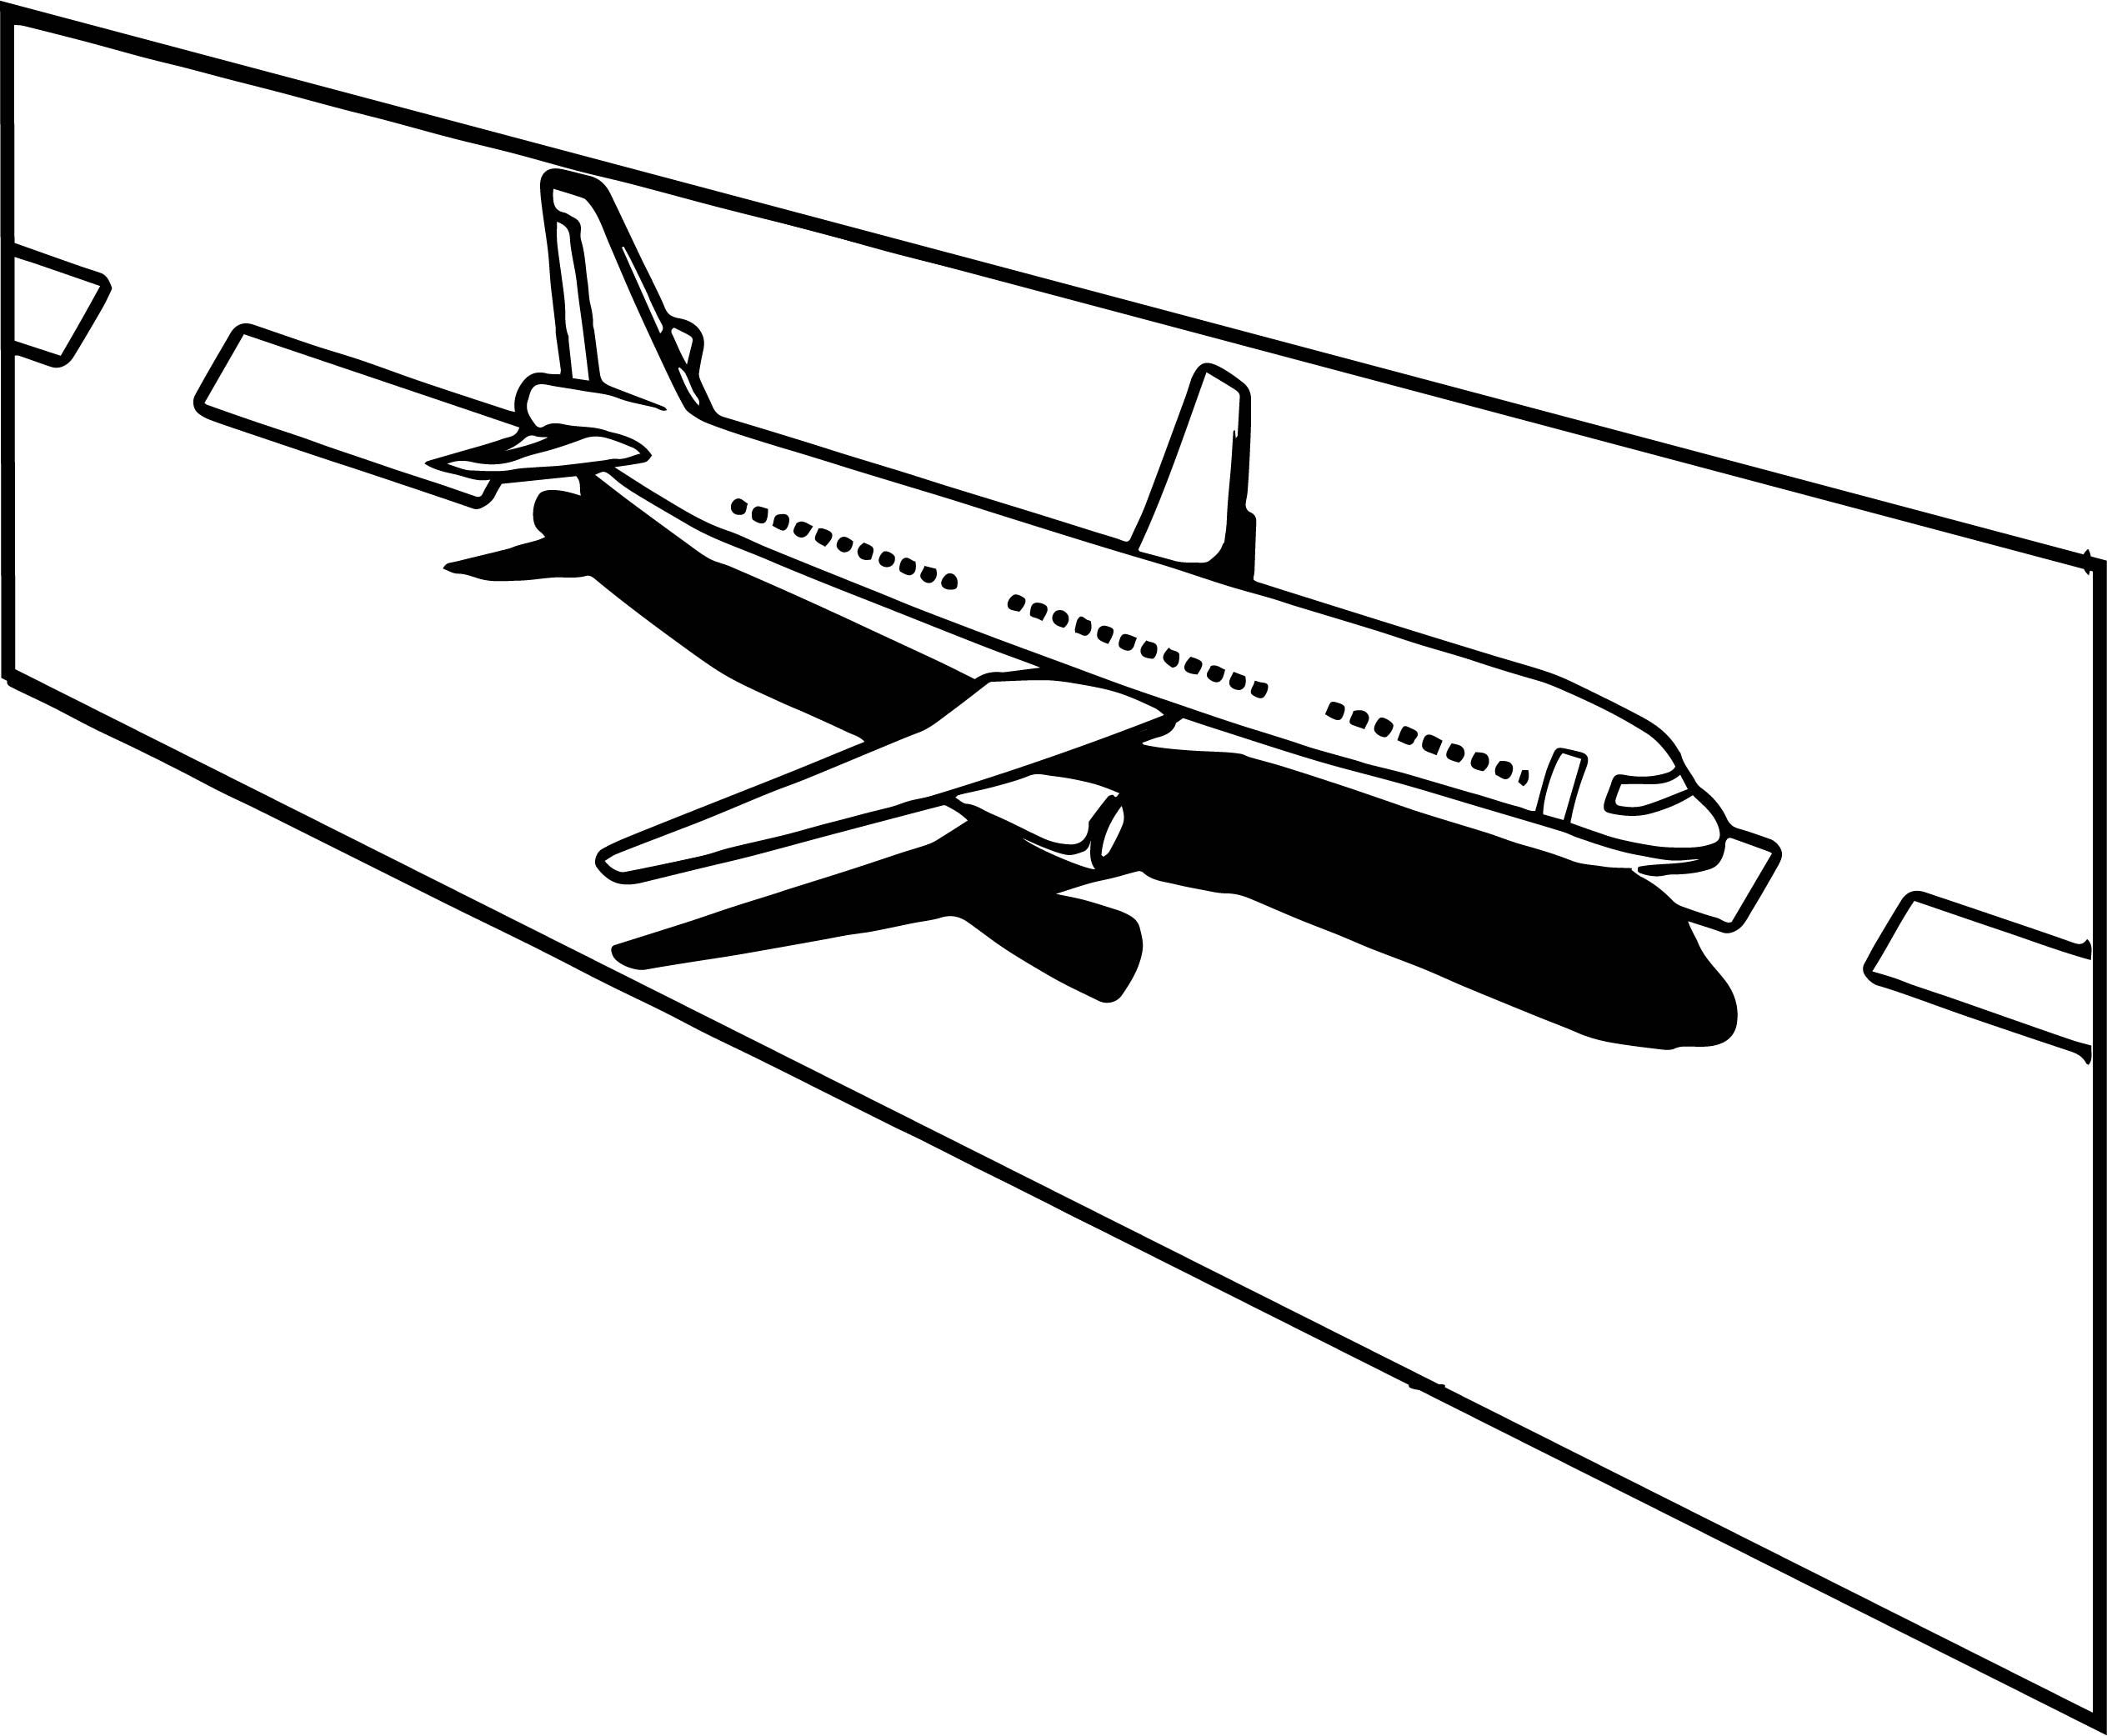 Cool Land An Airplane In An Emergency Coloring Page Train Coloring Pages Summer Coloring Pages Coloring Pages